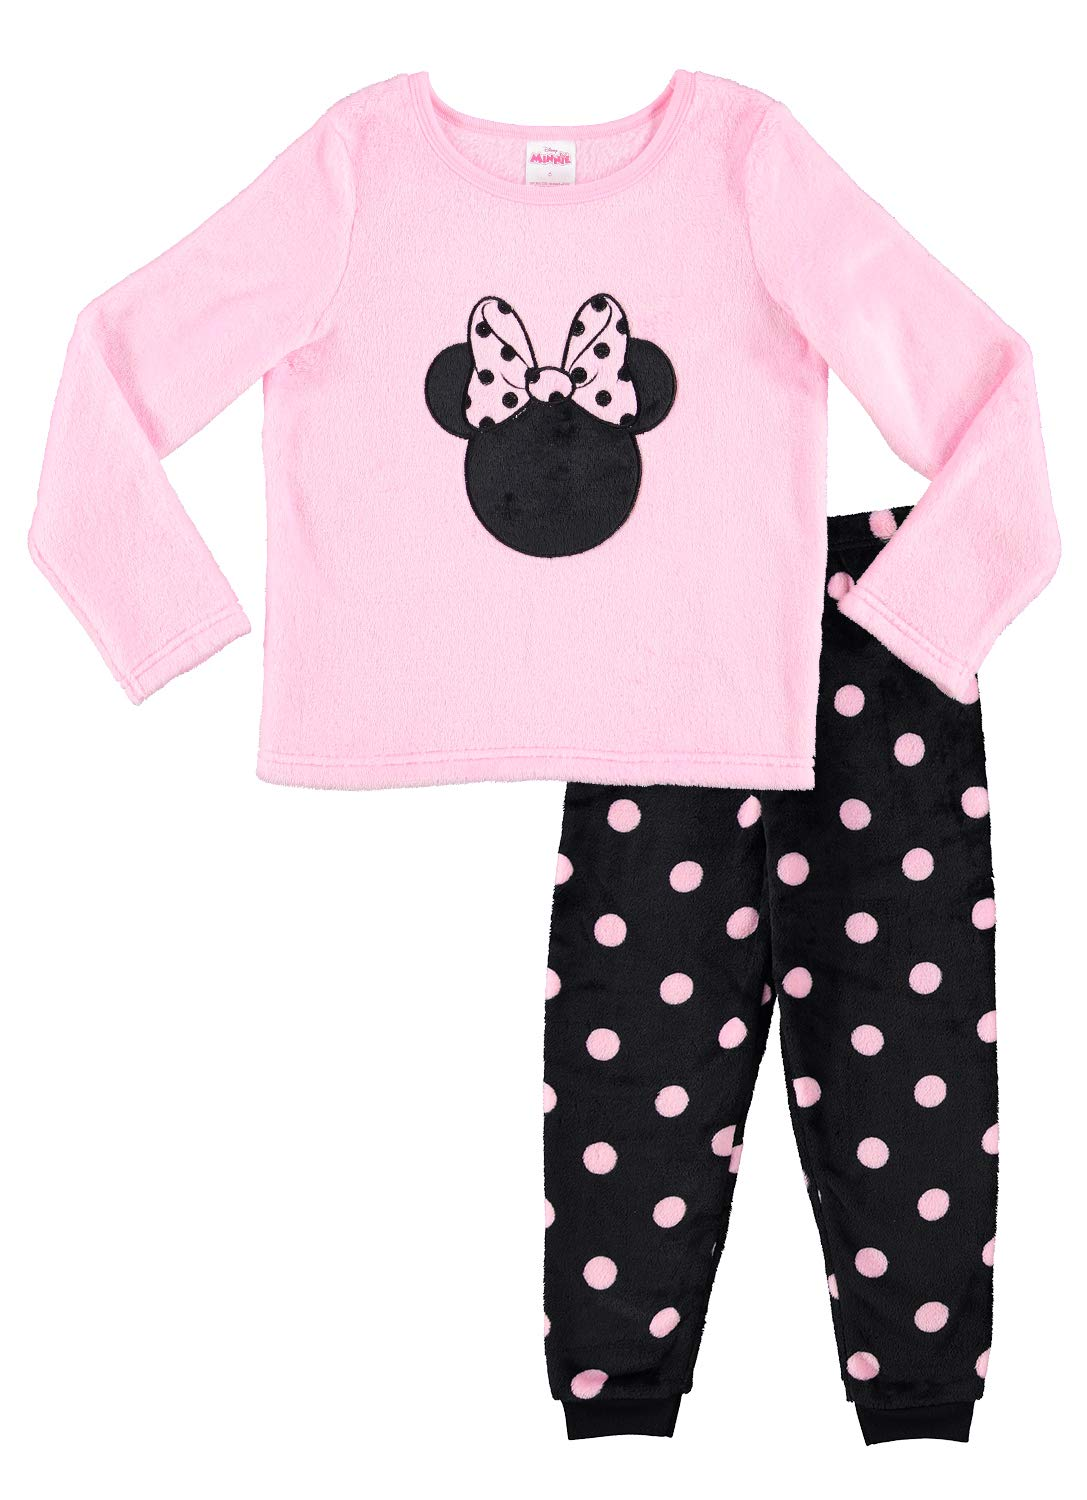 2-Piece Pajama Set | Adorable Fleece Pajamas For Girls